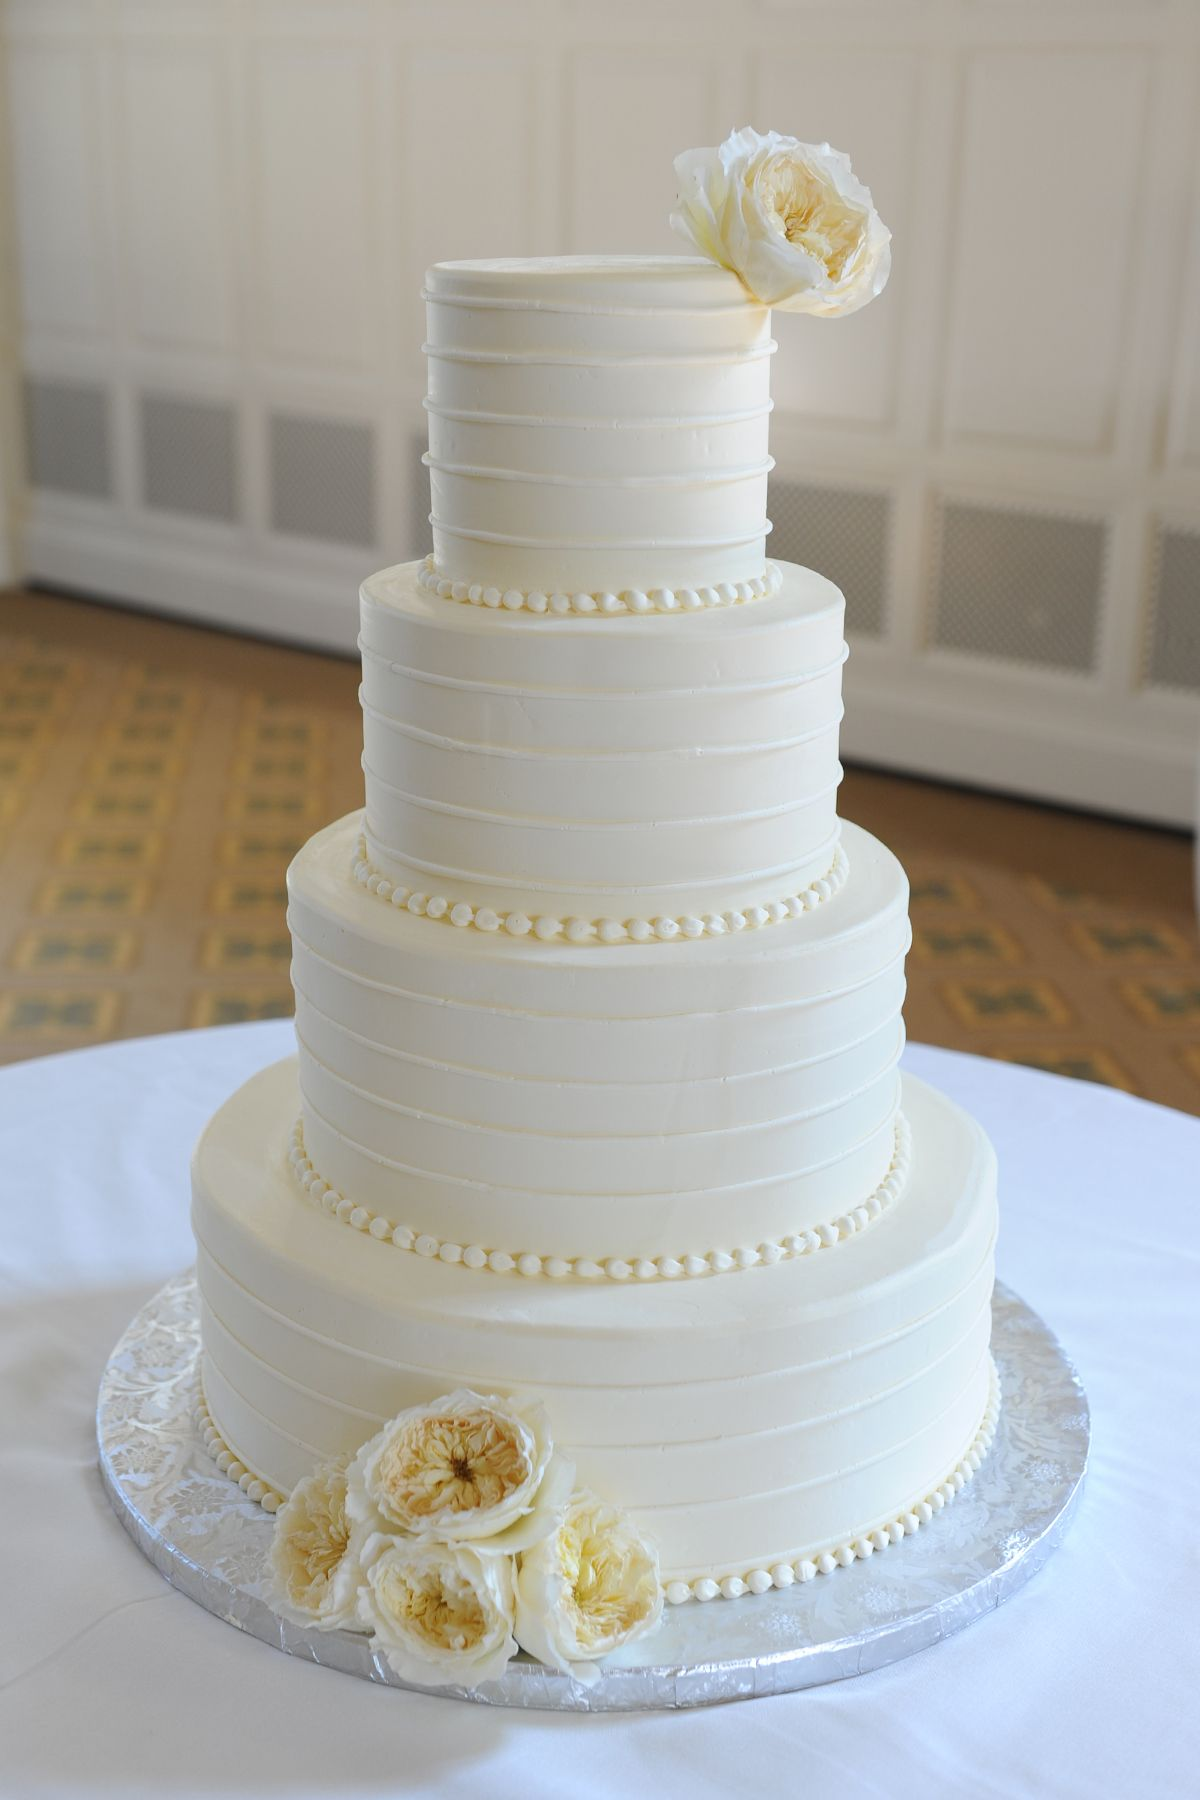 simple white wedding cake tying the knot pinterest white wedding cakes wedding cake and cake. Black Bedroom Furniture Sets. Home Design Ideas